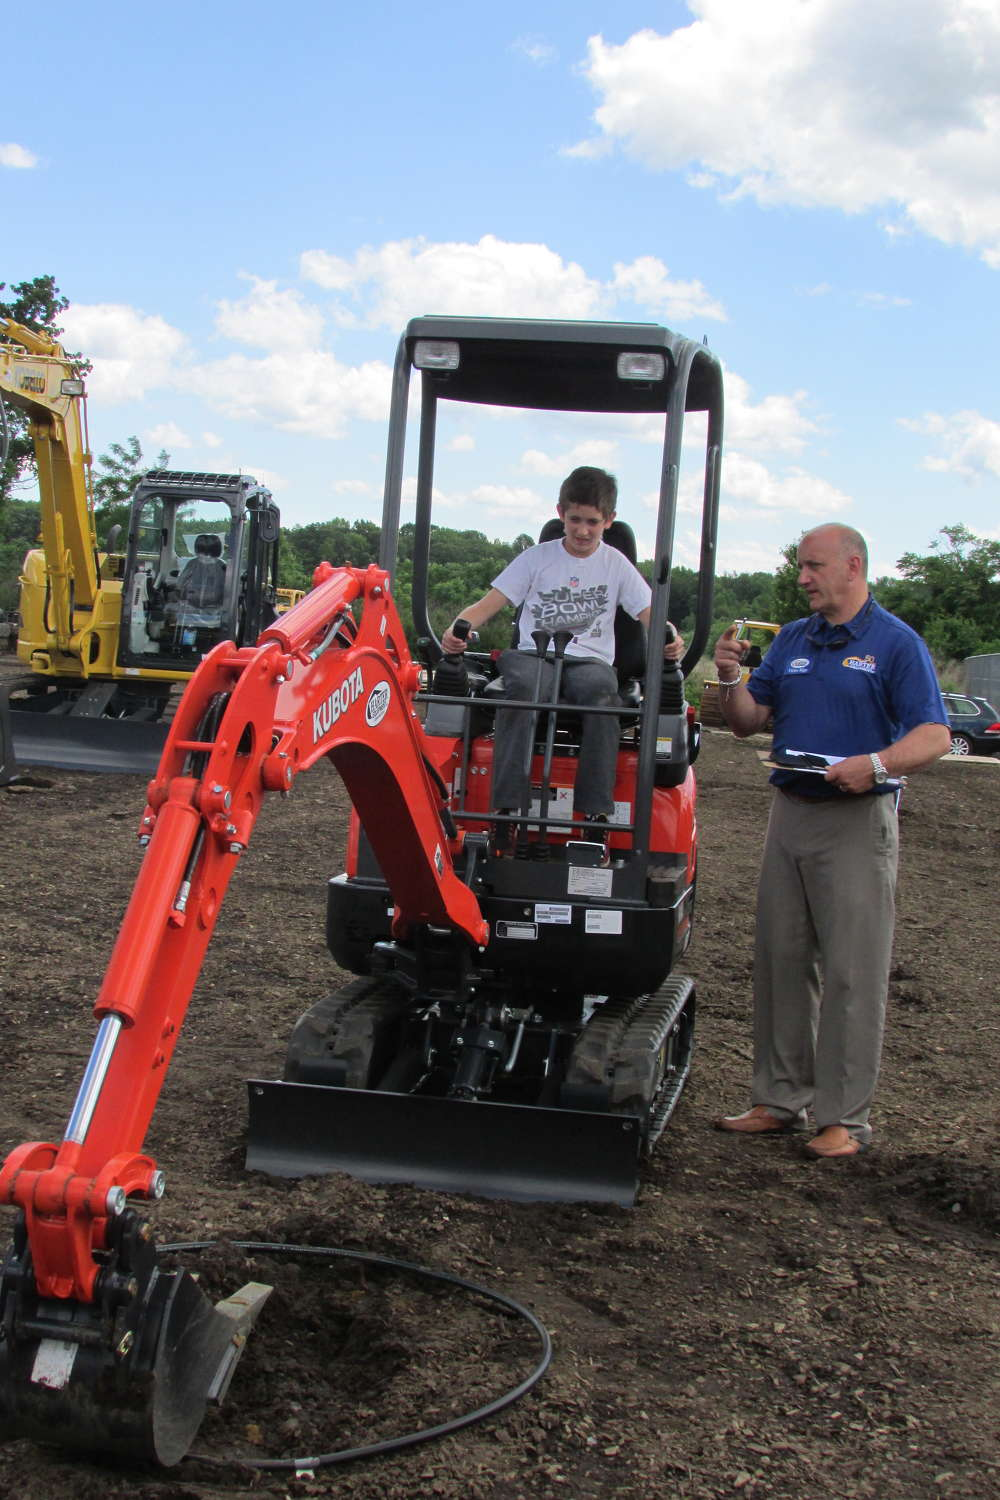 Vic Riga, vice president of sales, Harter Equipment, provides instructions for the children's rodeo during the open house.